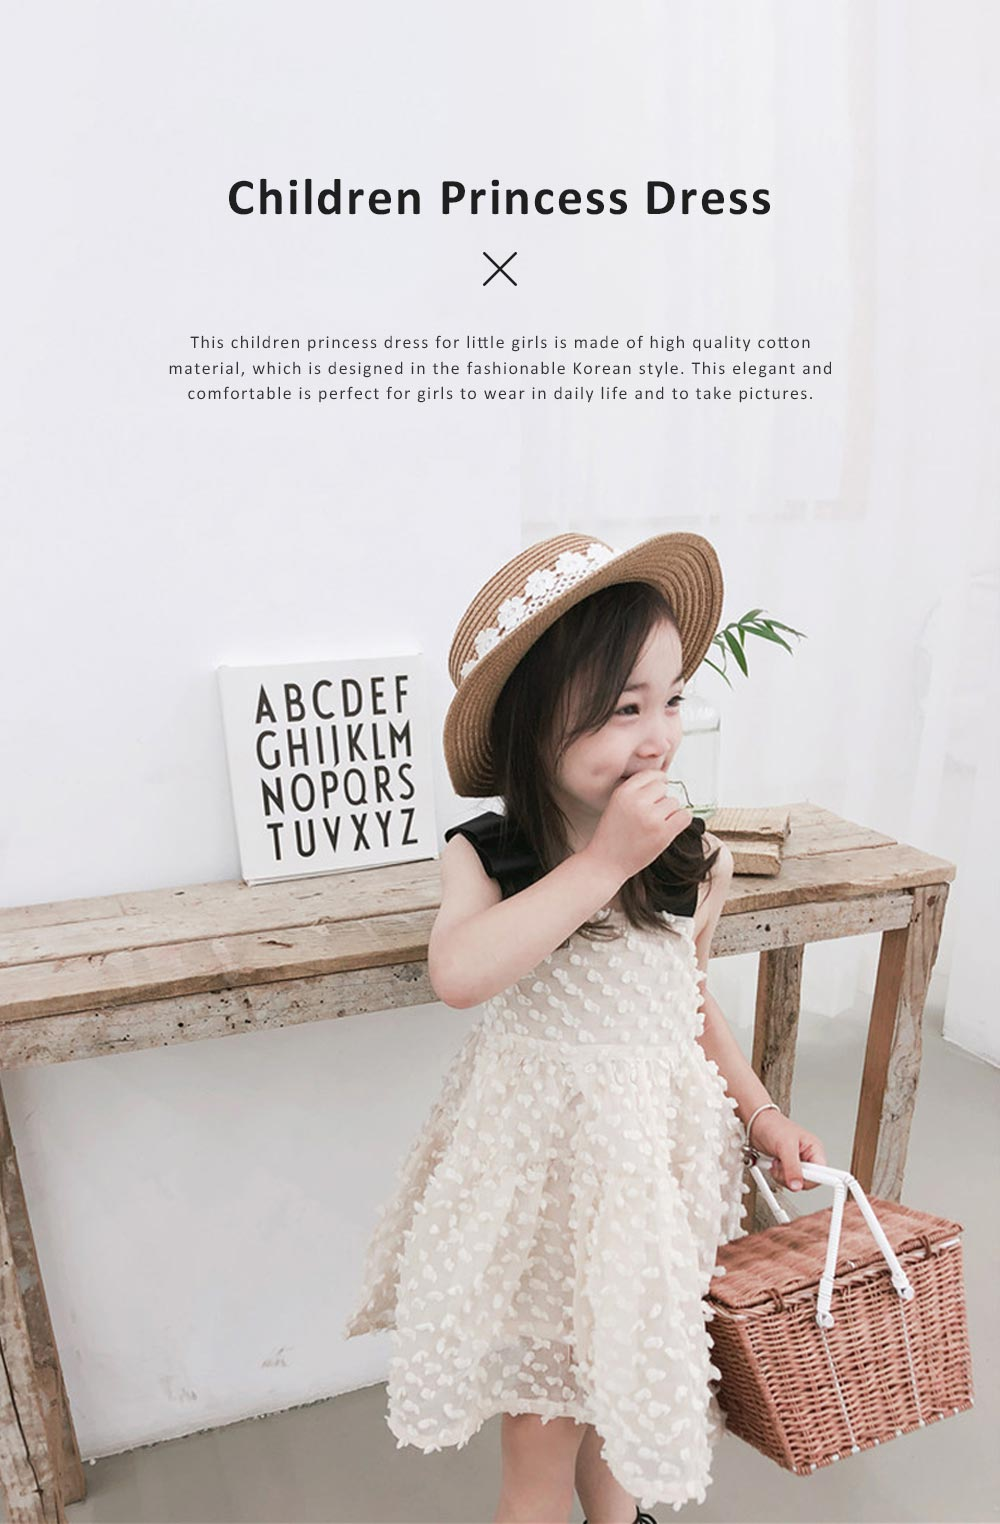 2019 Latest French Court Style One-piece Dress for Children, Sweet Cute Cotton Material Children Princess Dress 0